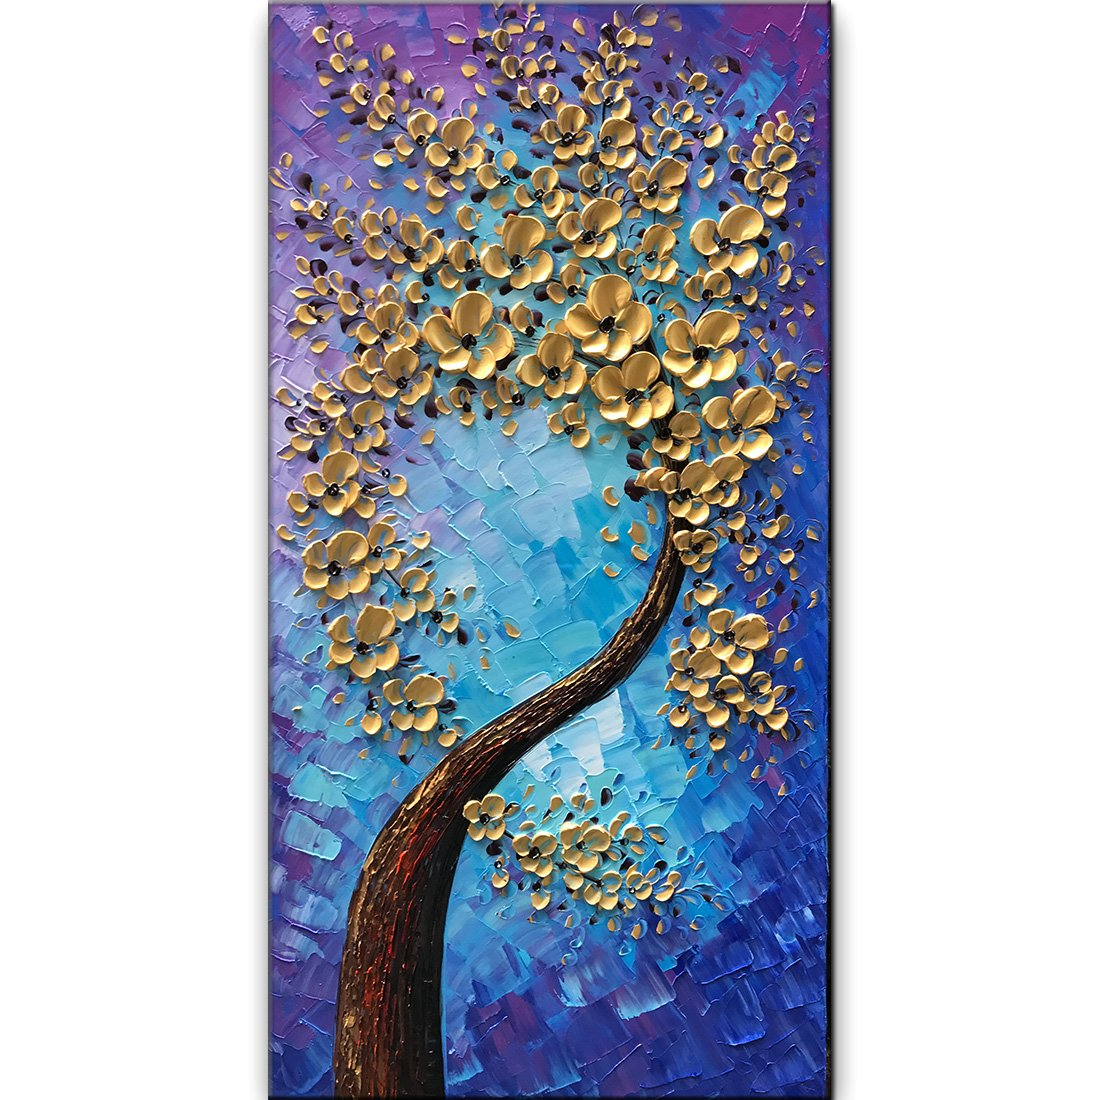 baccow -- 3D Blossom Trees Handmade Abstract Wall Art Landscape Oil Paintings Canvas with Frames for Bedroom Kitchen Living Room Office 24x48inc